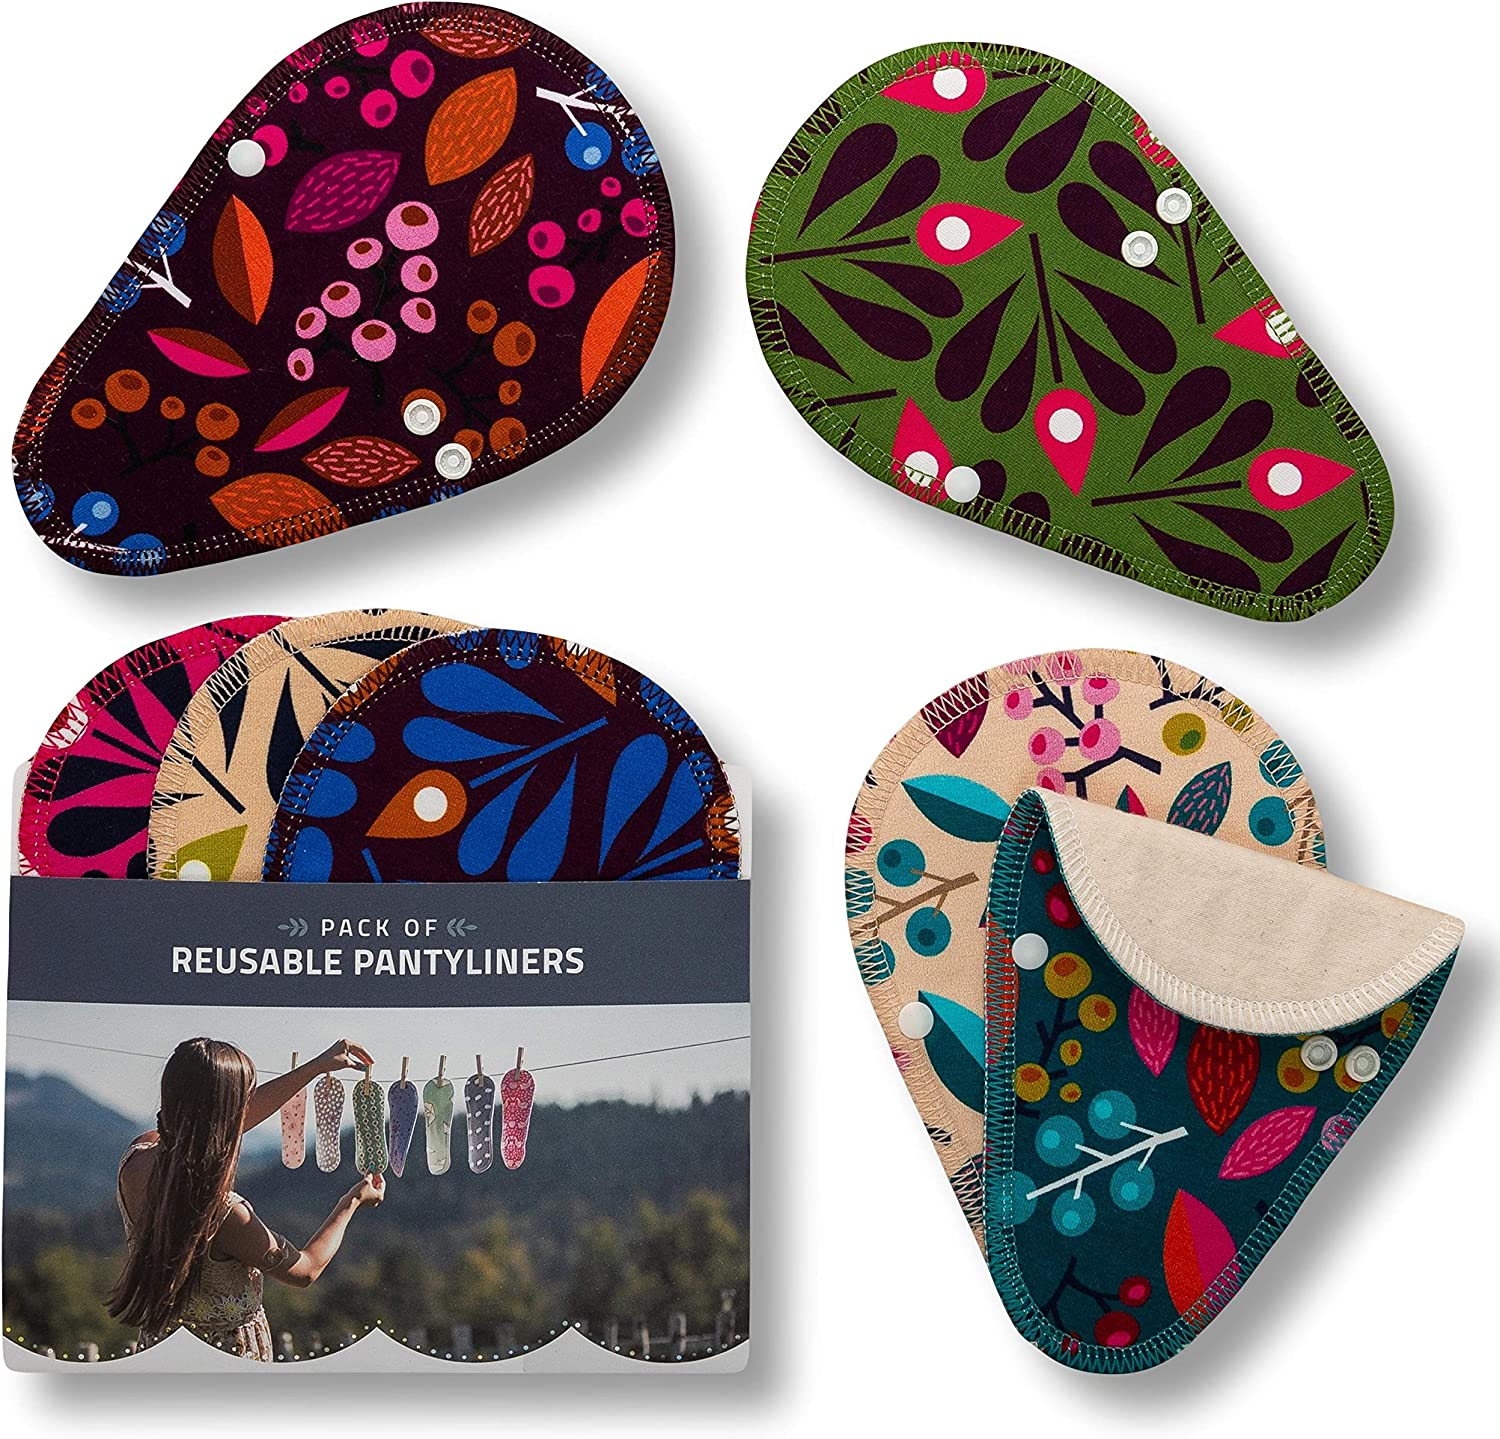 Reusable Panty Liners for Women Denver Mall 7-Pack Small Store Mini THONG; Organ